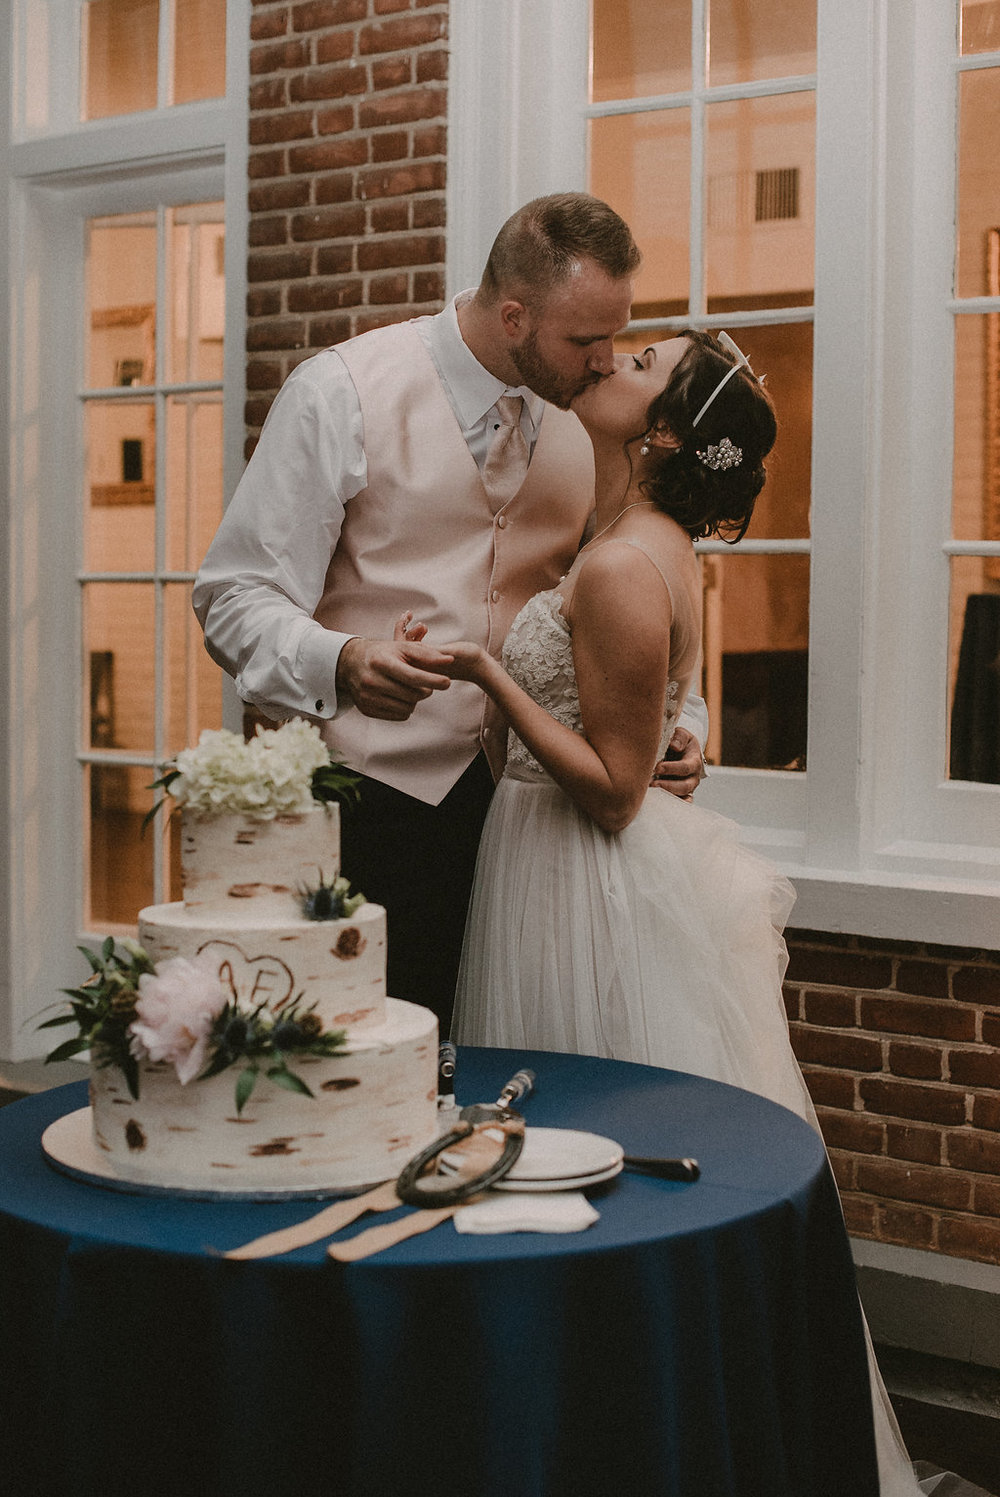 Bride and groom kissing at cake